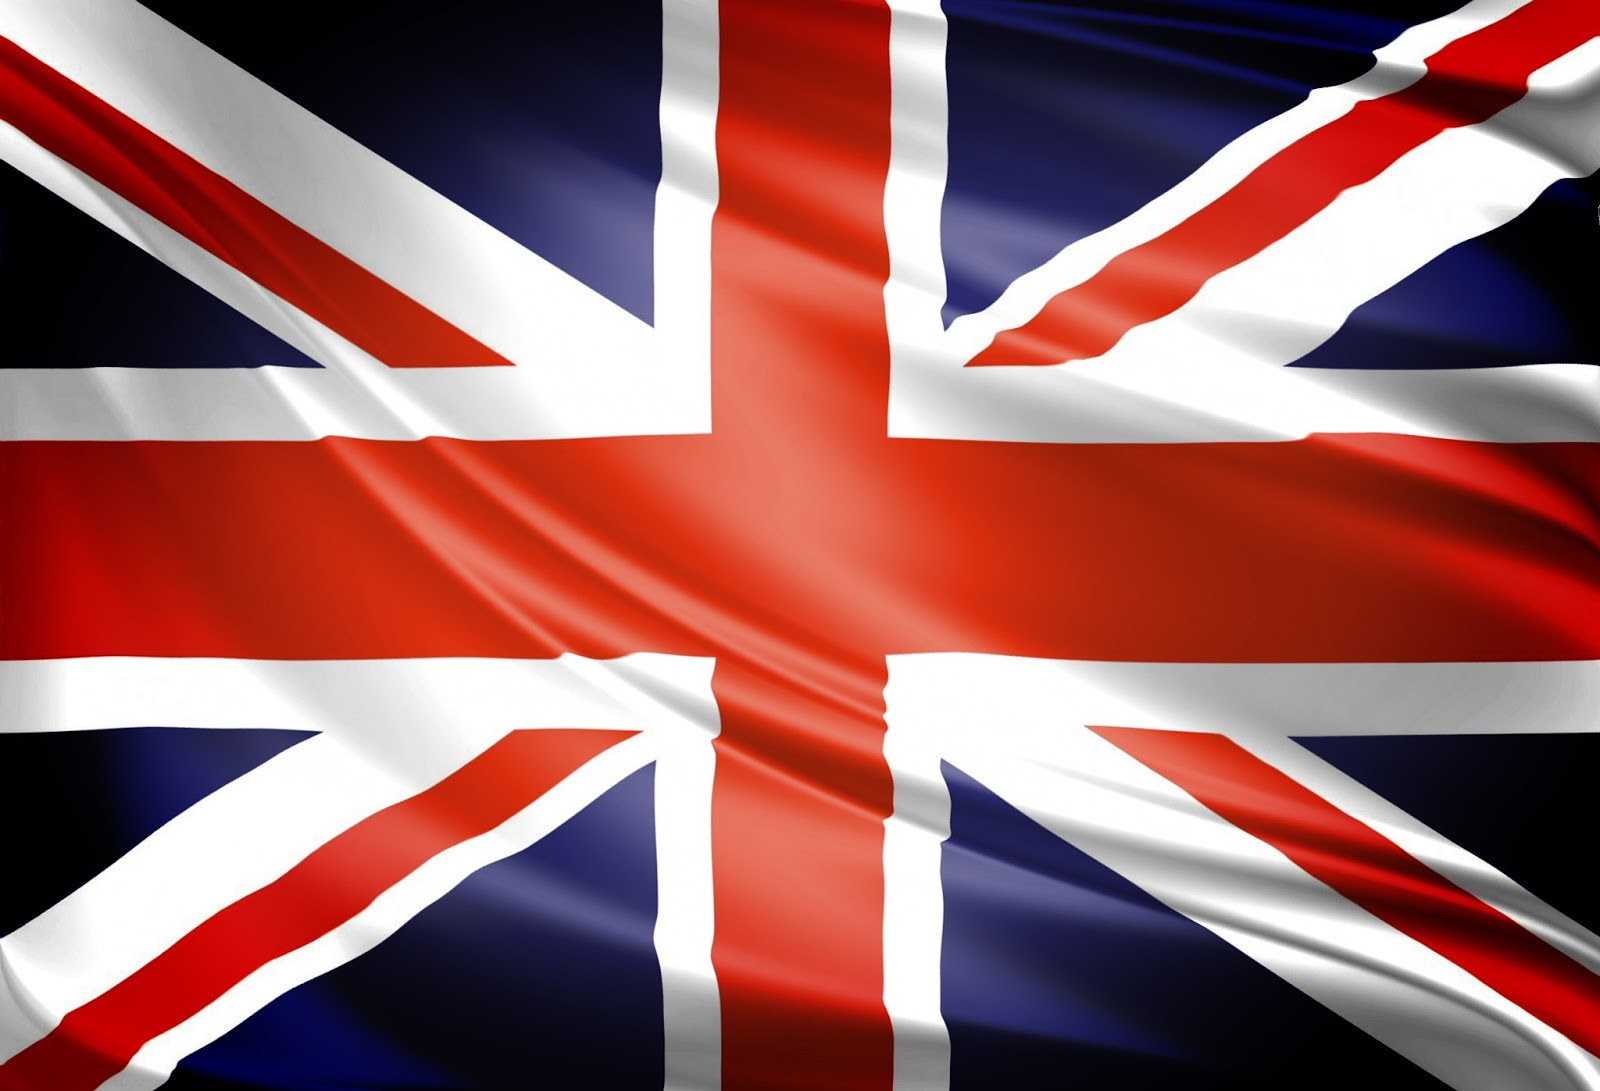 England Flag Wallpaper 3d